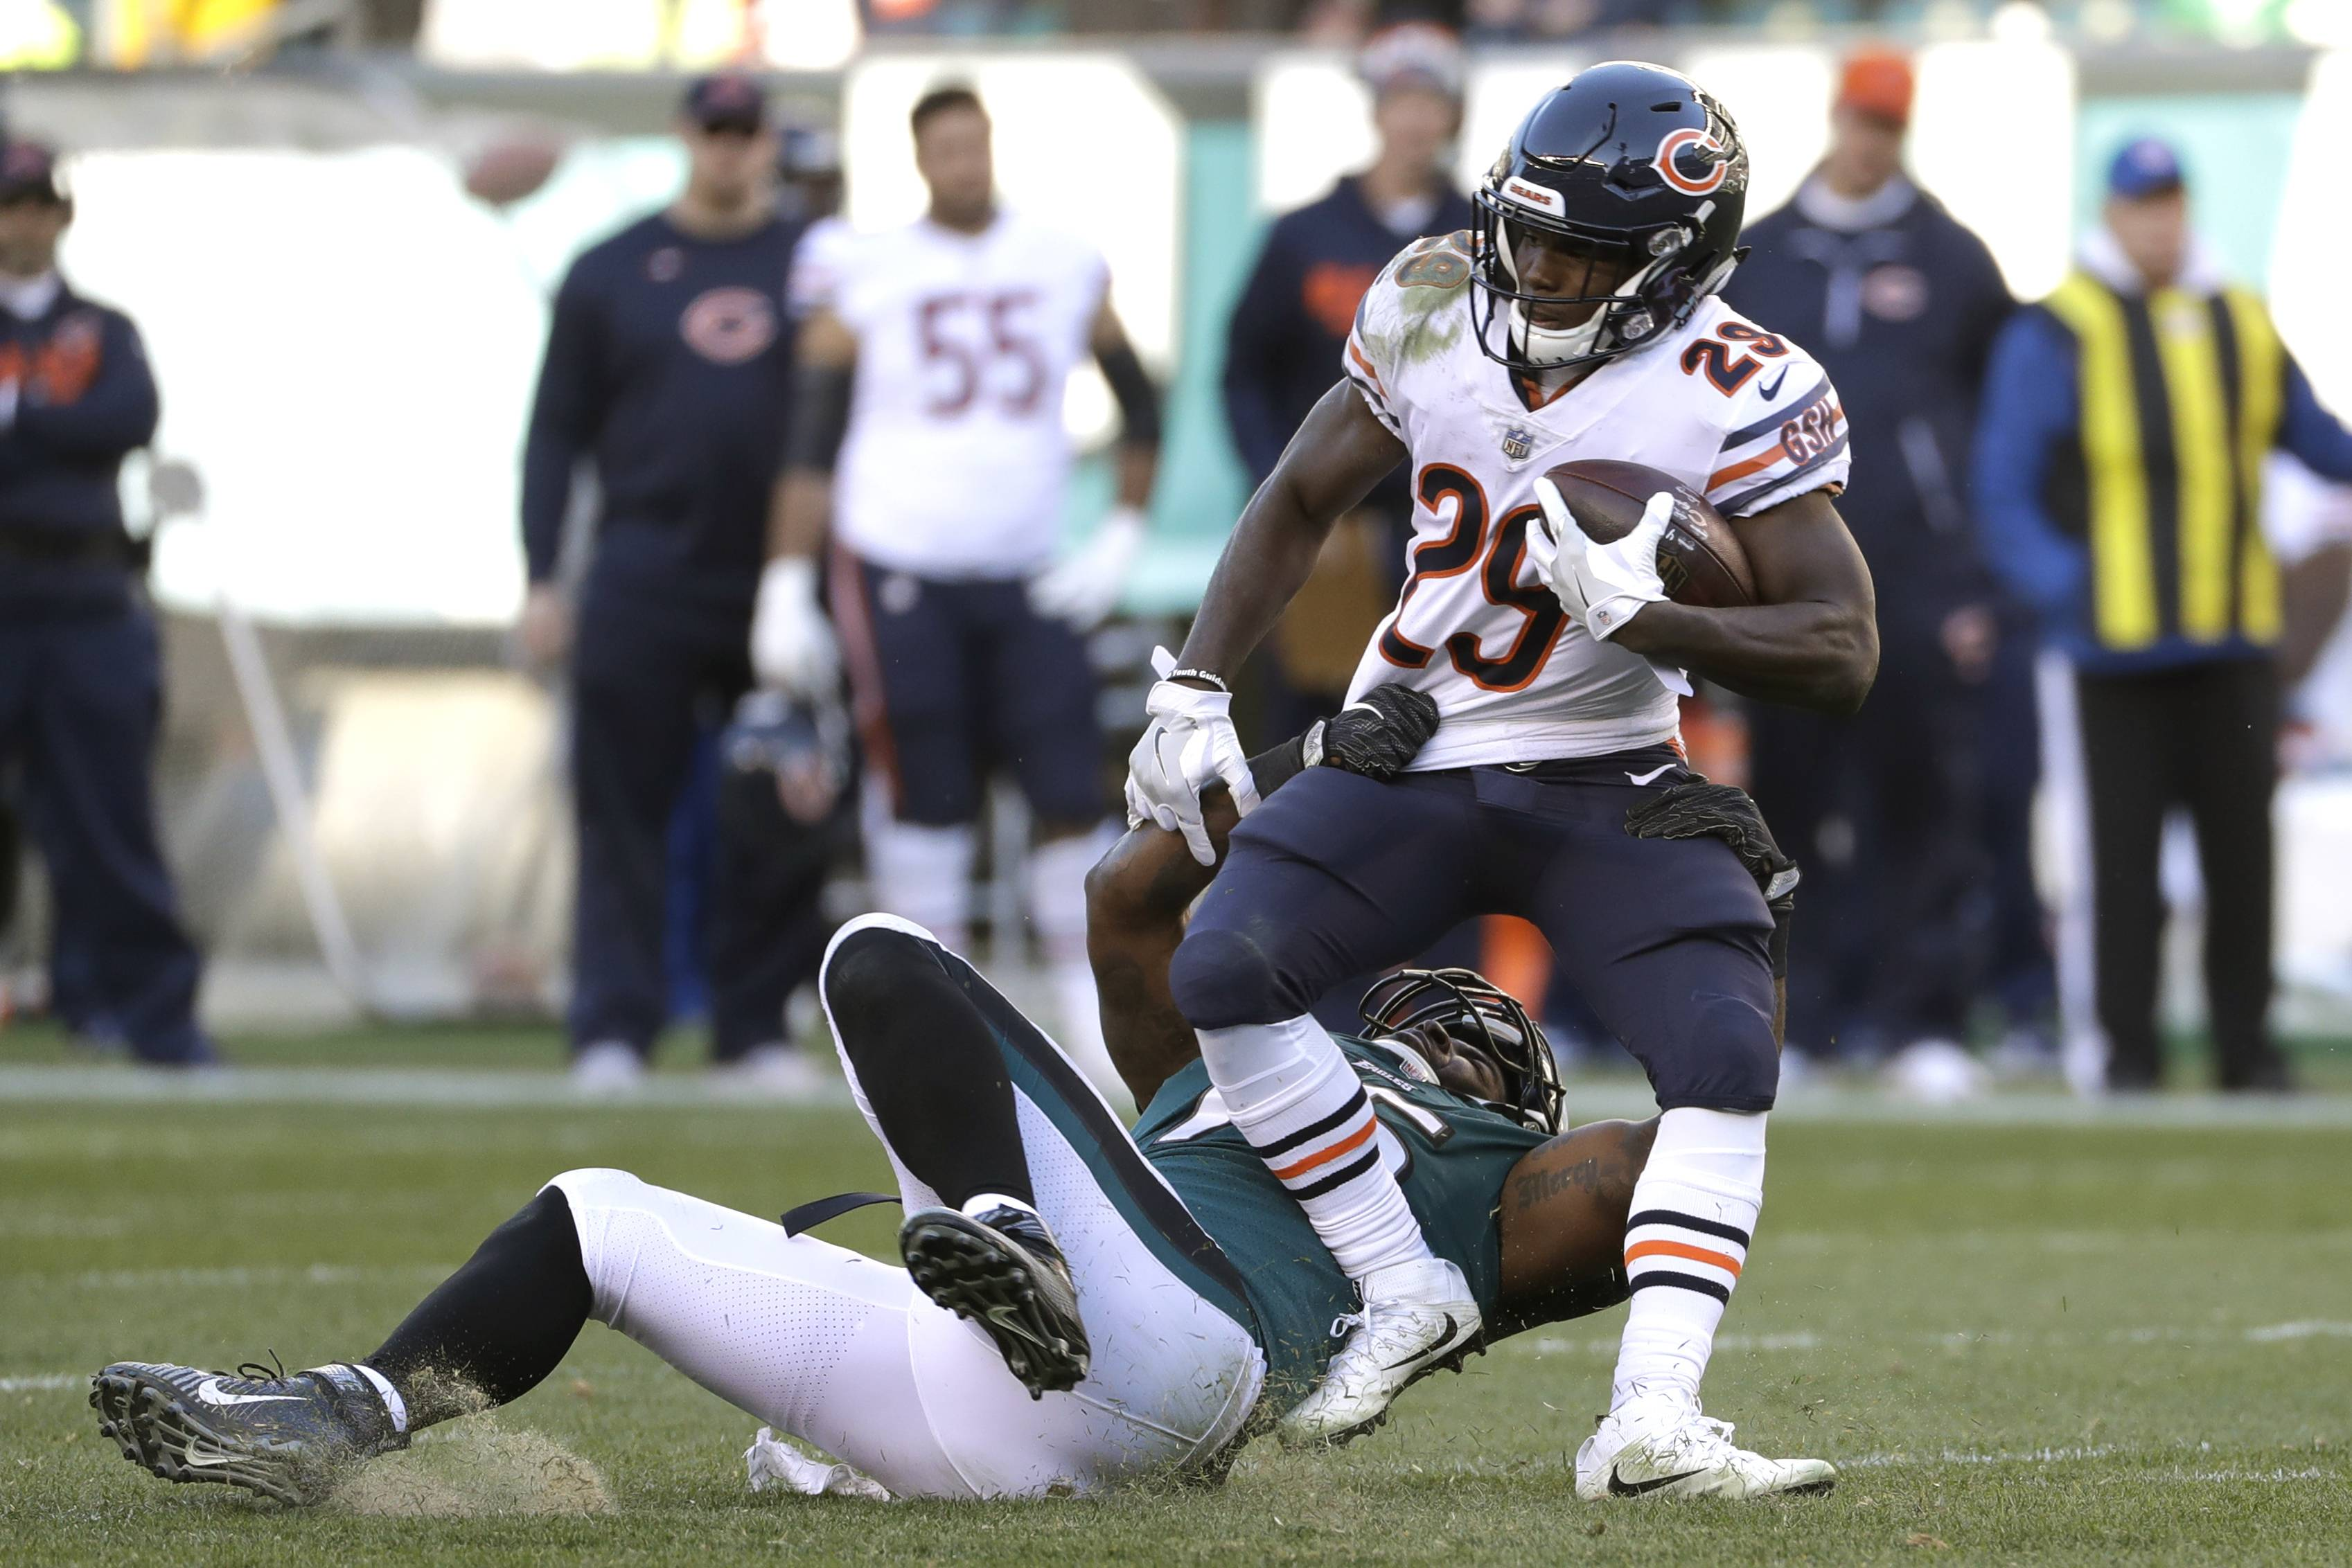 Chicago Bears' Tarik Cohen, right, is tackled by Philadelphia Eagles' Vinny Curry during the second half of an NFL football game, Sunday, Nov. 26, 2017, in Philadelphia. (AP Photo/Michael Perez)